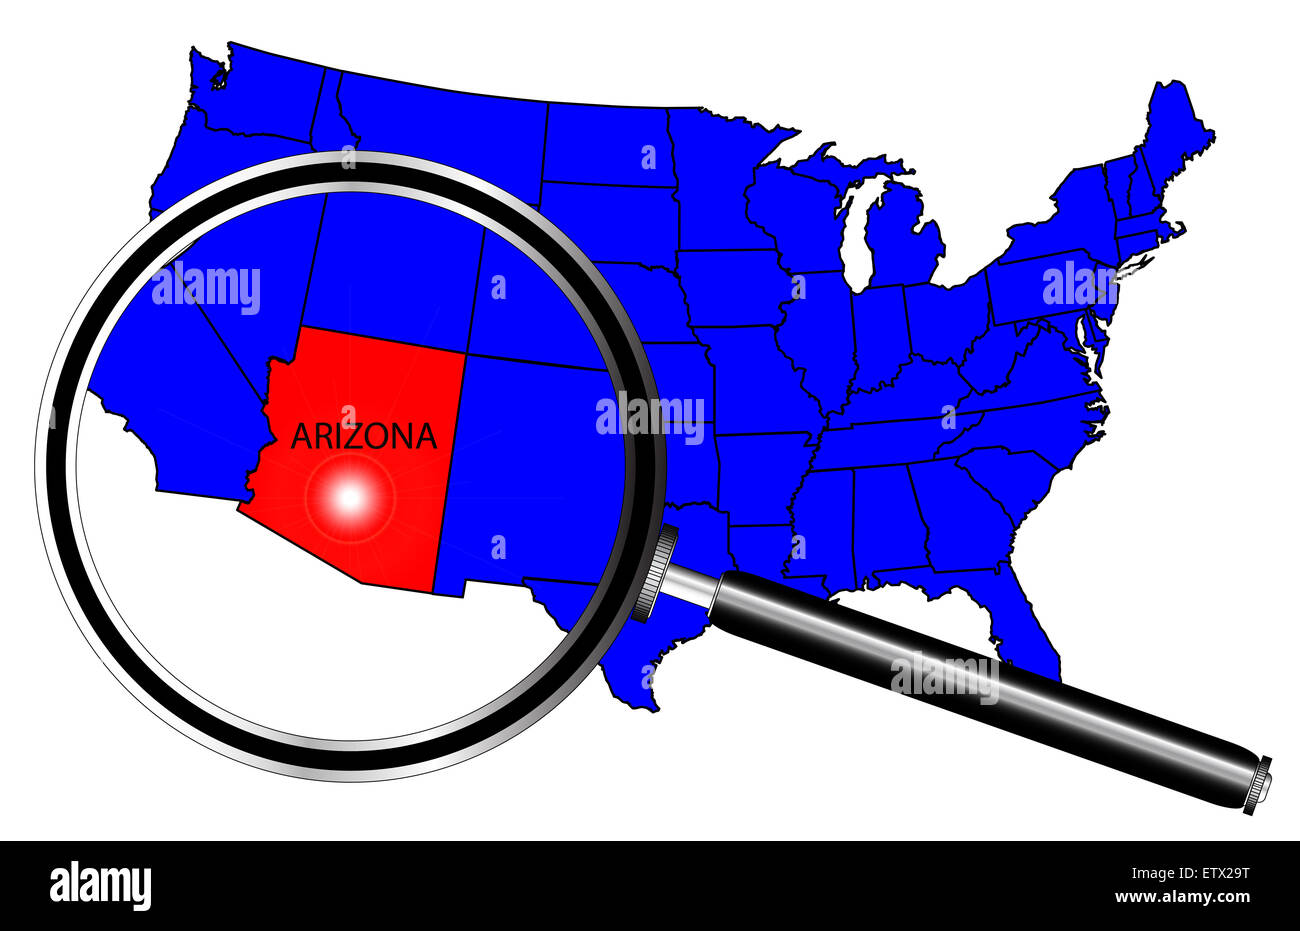 Arizona state outline set into a map of The United States of ...